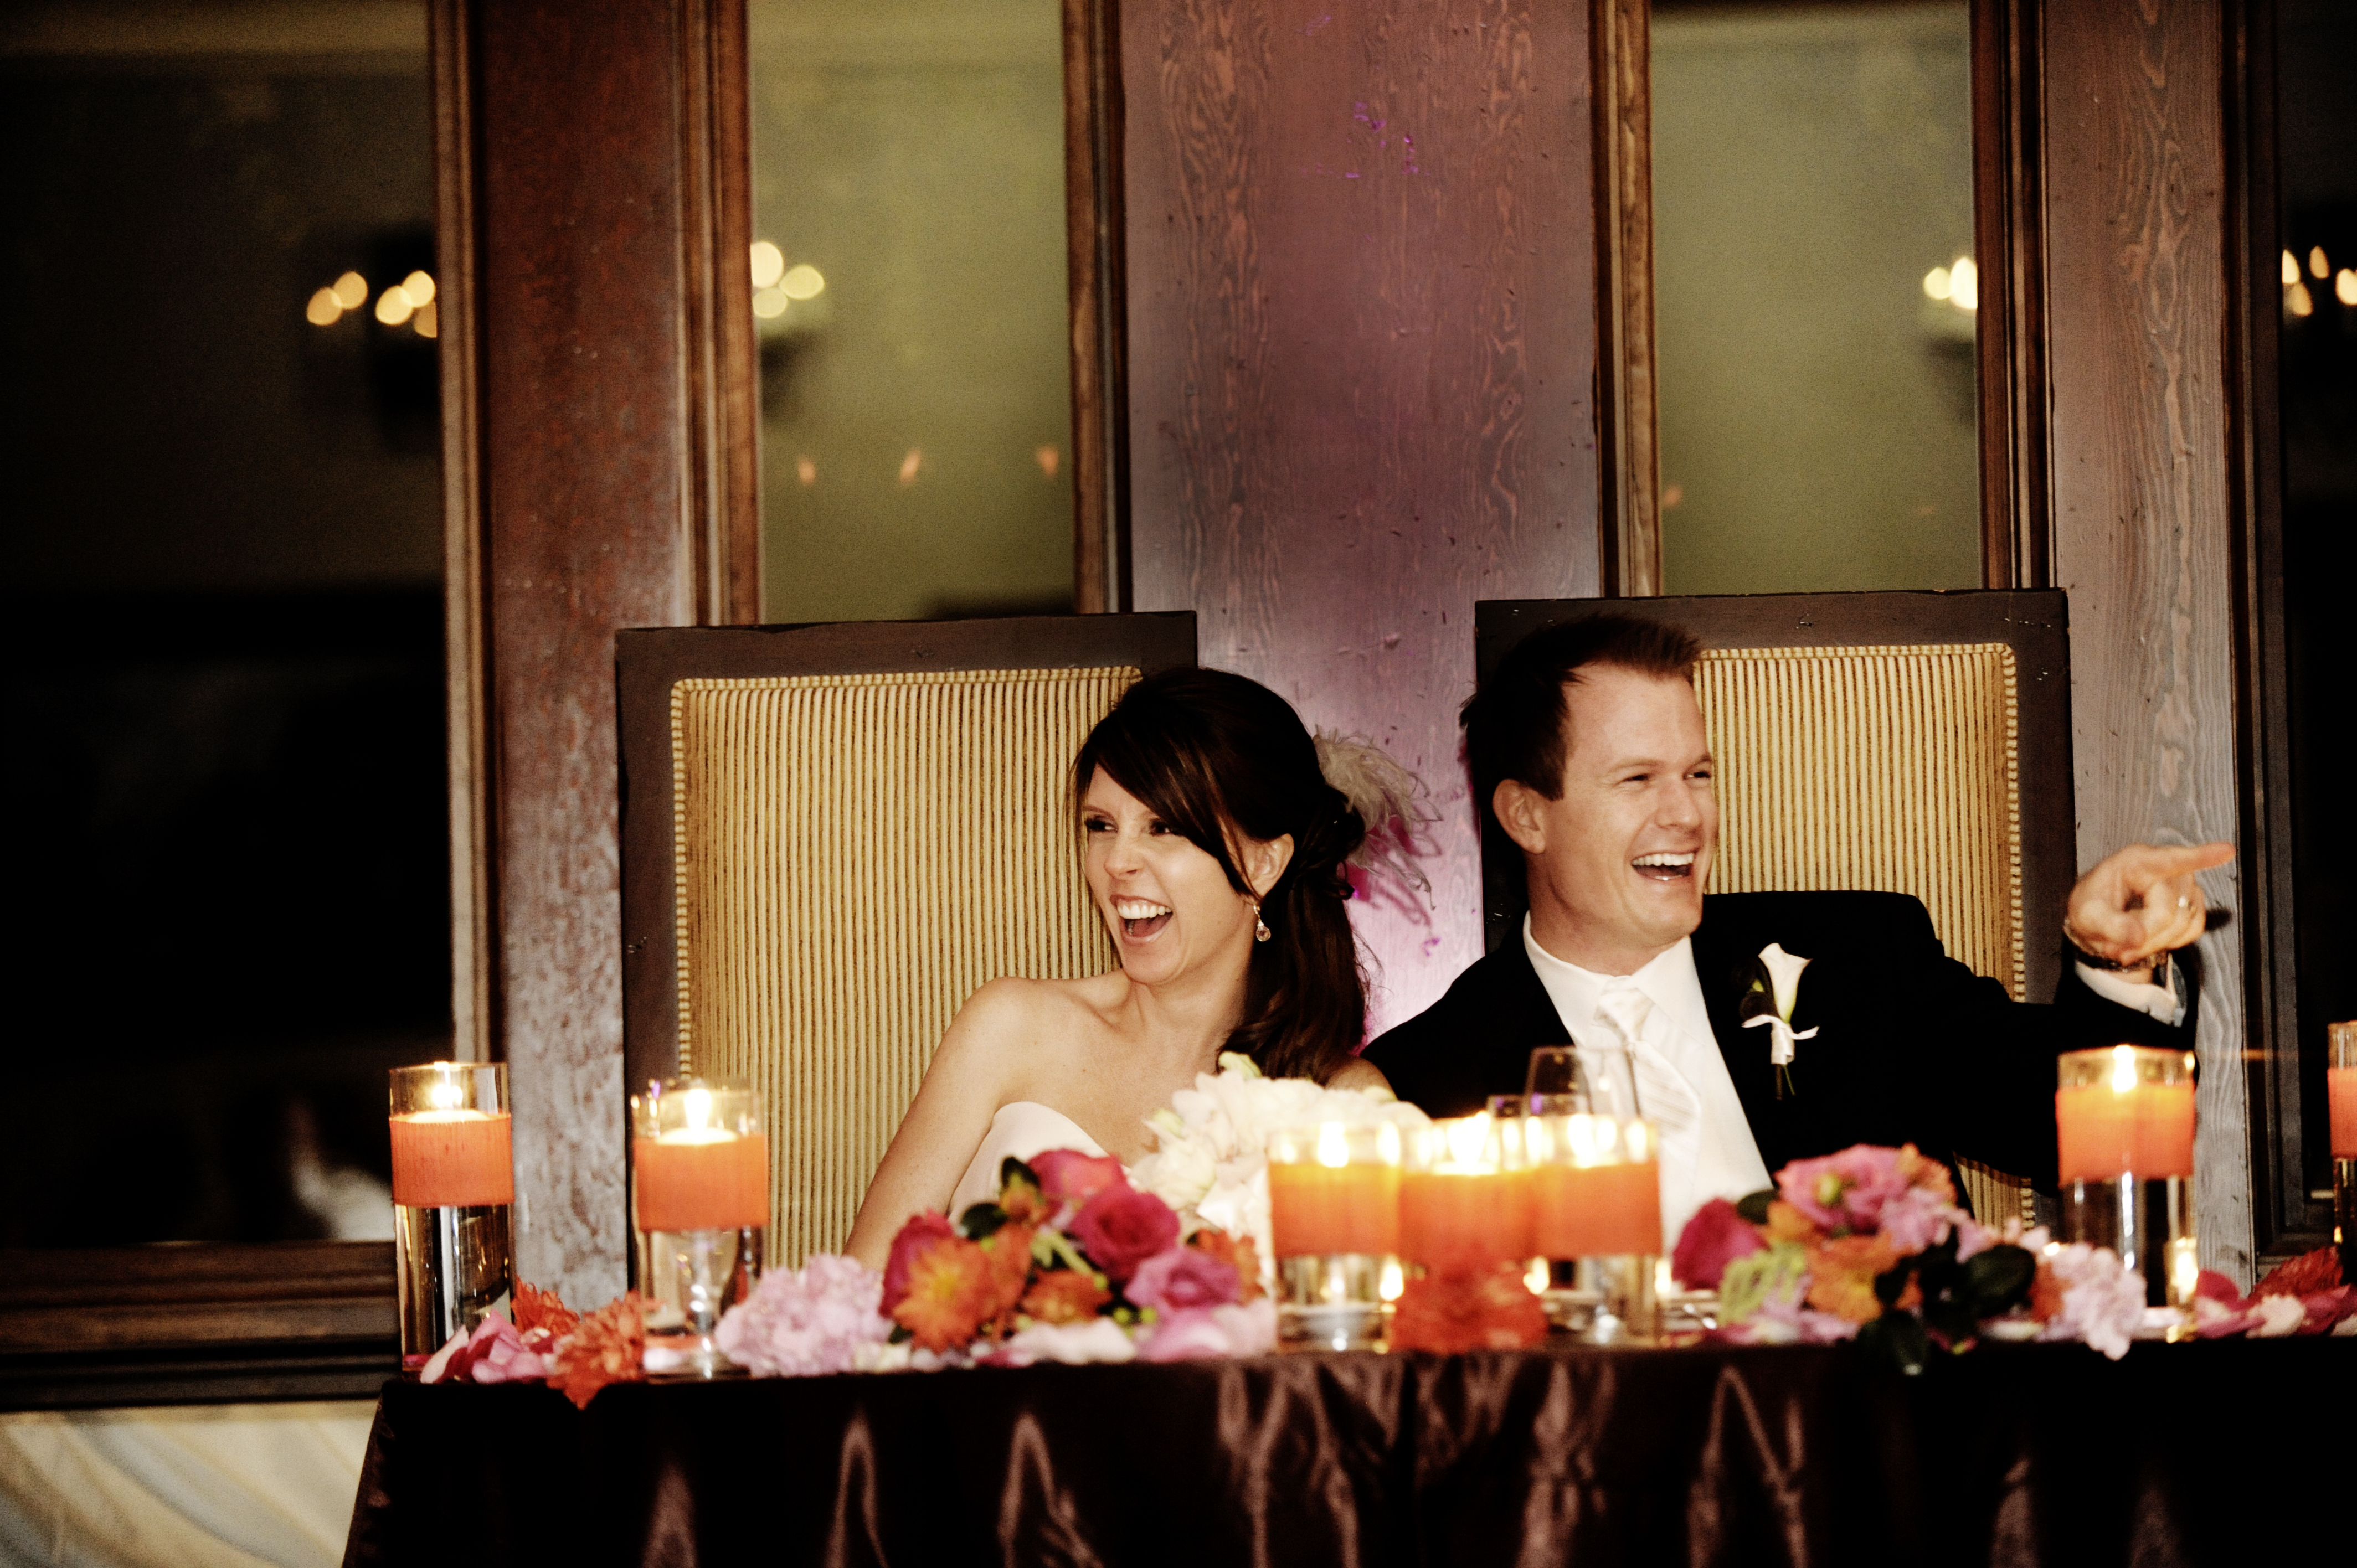 Photography, brown, Modern, Wedding, Table, Head, Fushia, Klk, Vibrant, Luxury, Kristi, Klemens